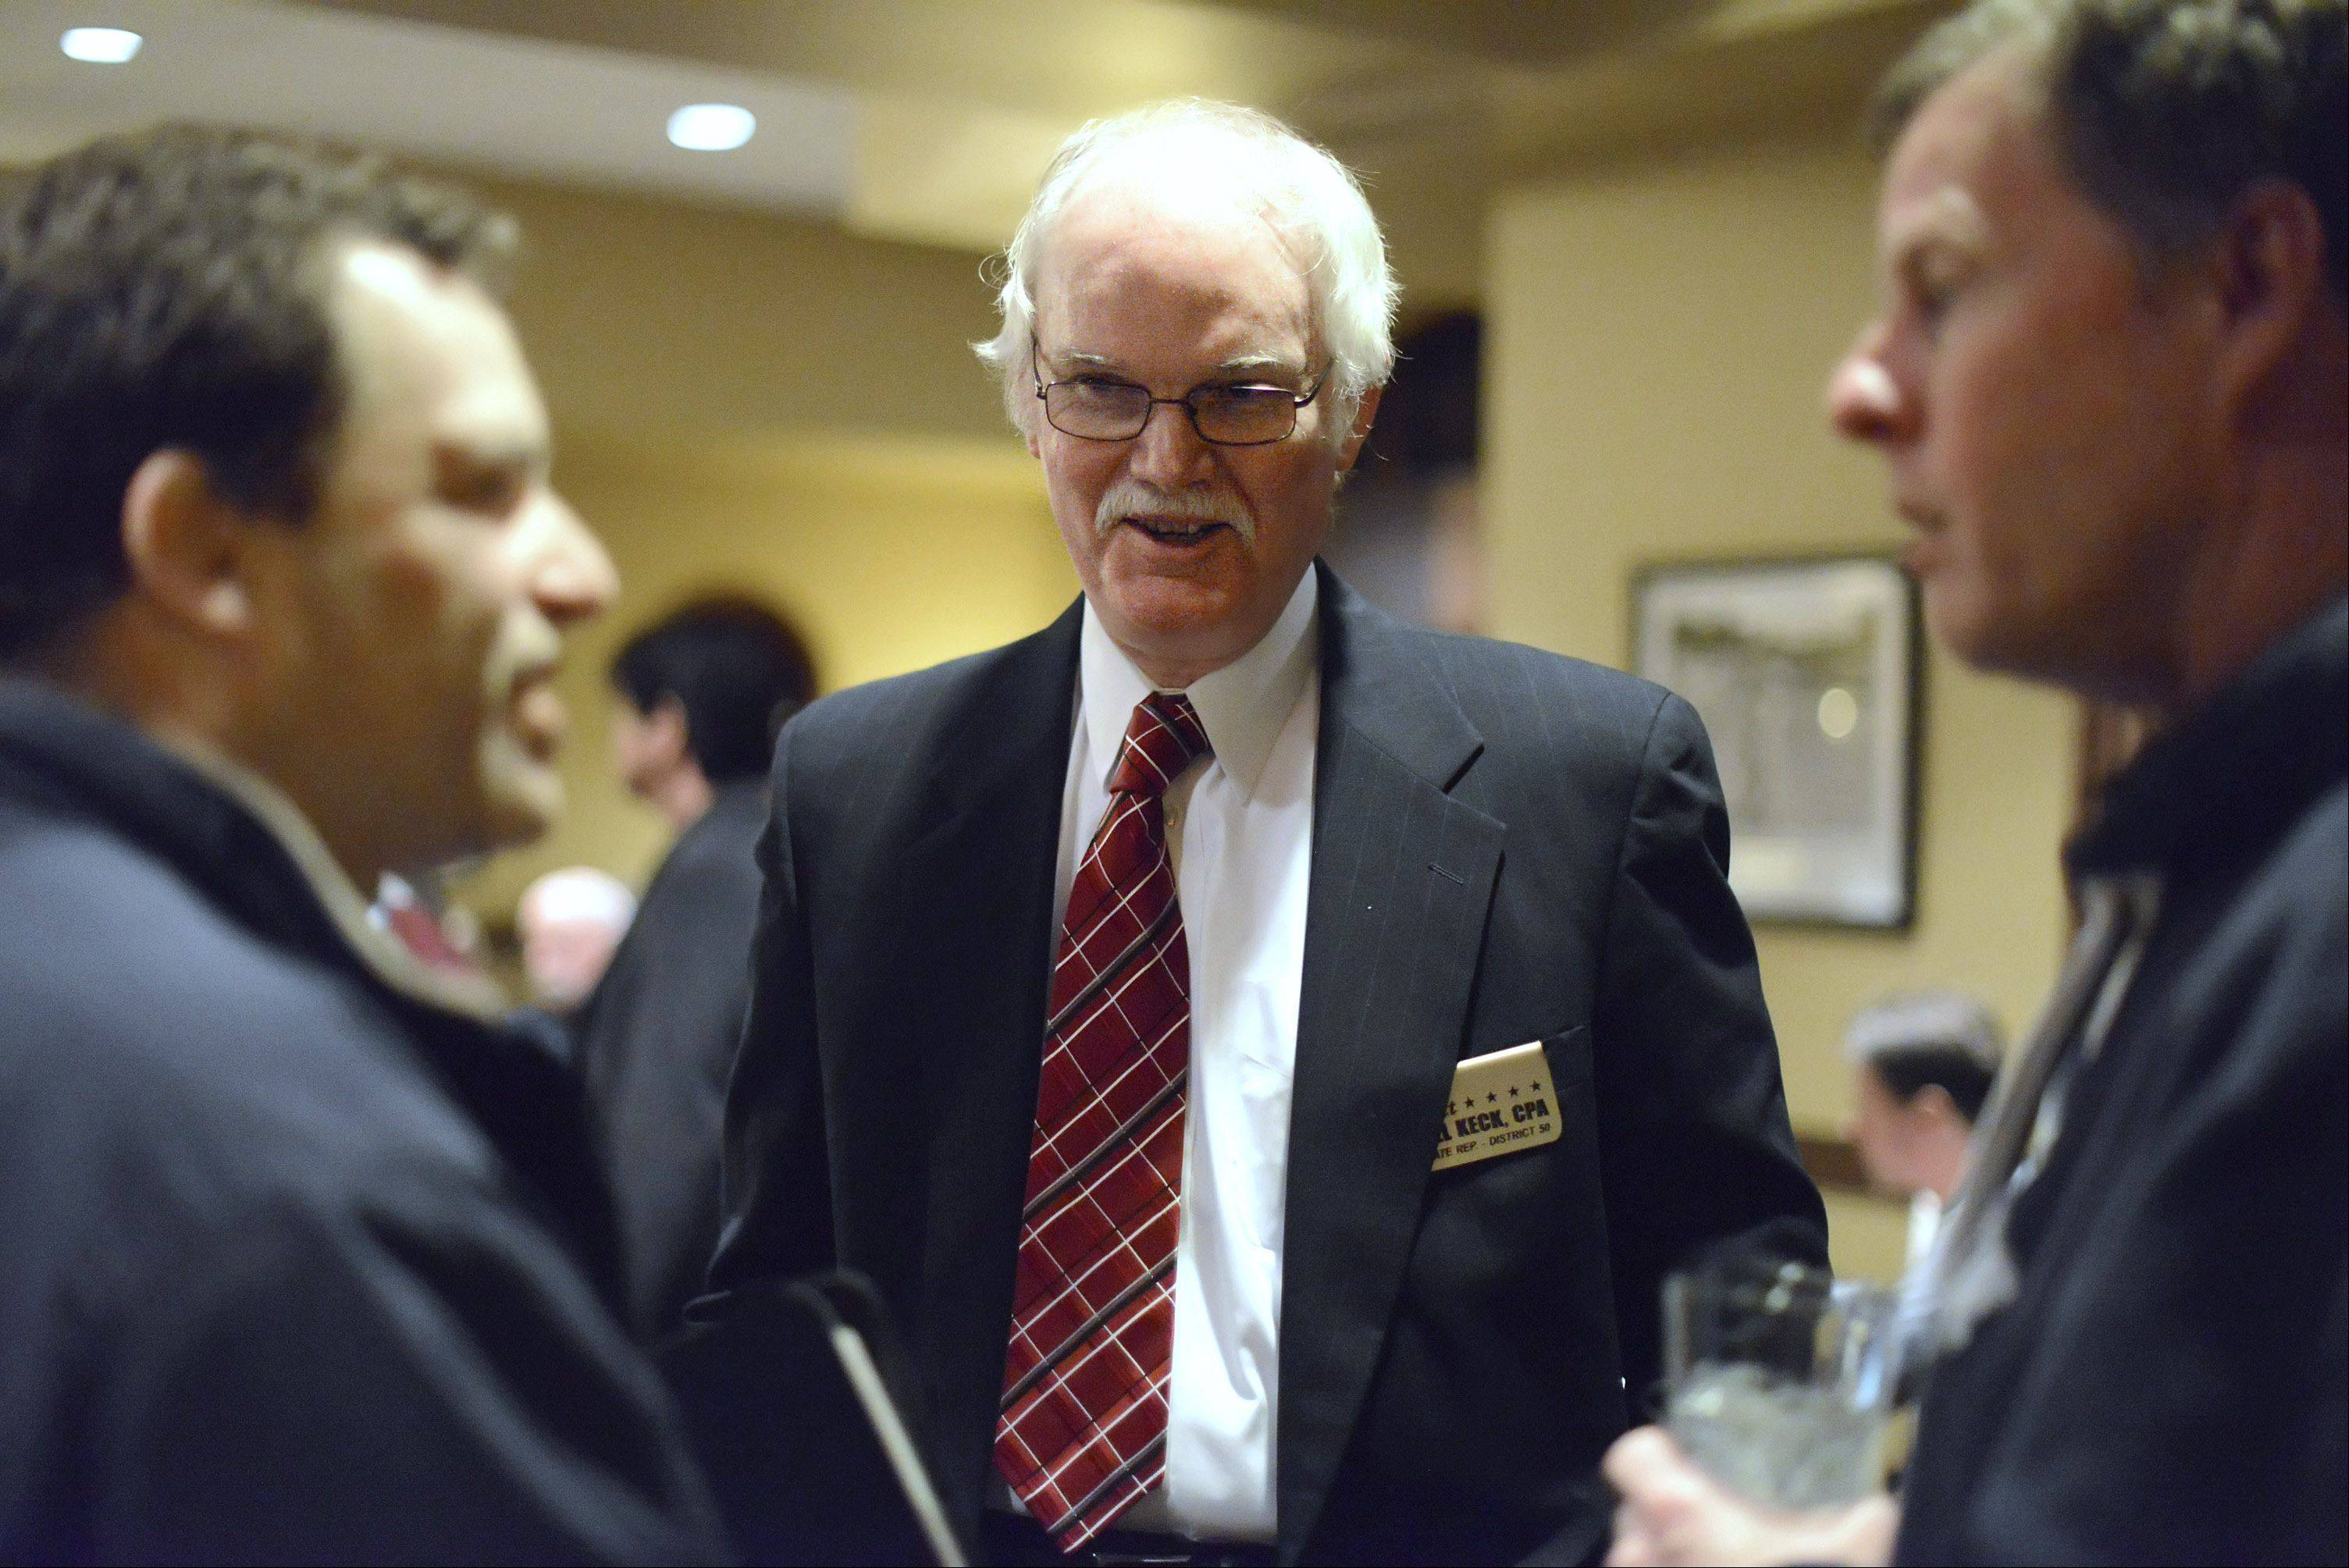 Bill Keck of Sugar Grove, center, talks with Jon Zahm, left, of Osco and Dave Richmond, of Yorkville, prior to a debate hosted by the Kane County Young Republicans at the Orchard Valley Restaurant in Aurora on Wednesday. Keck seeks the nomination for the 50th House seat in the March primary. Zahm is a political consultant; Richmond is the former supervisor of Blackberry Township, before moving to Yorkville.